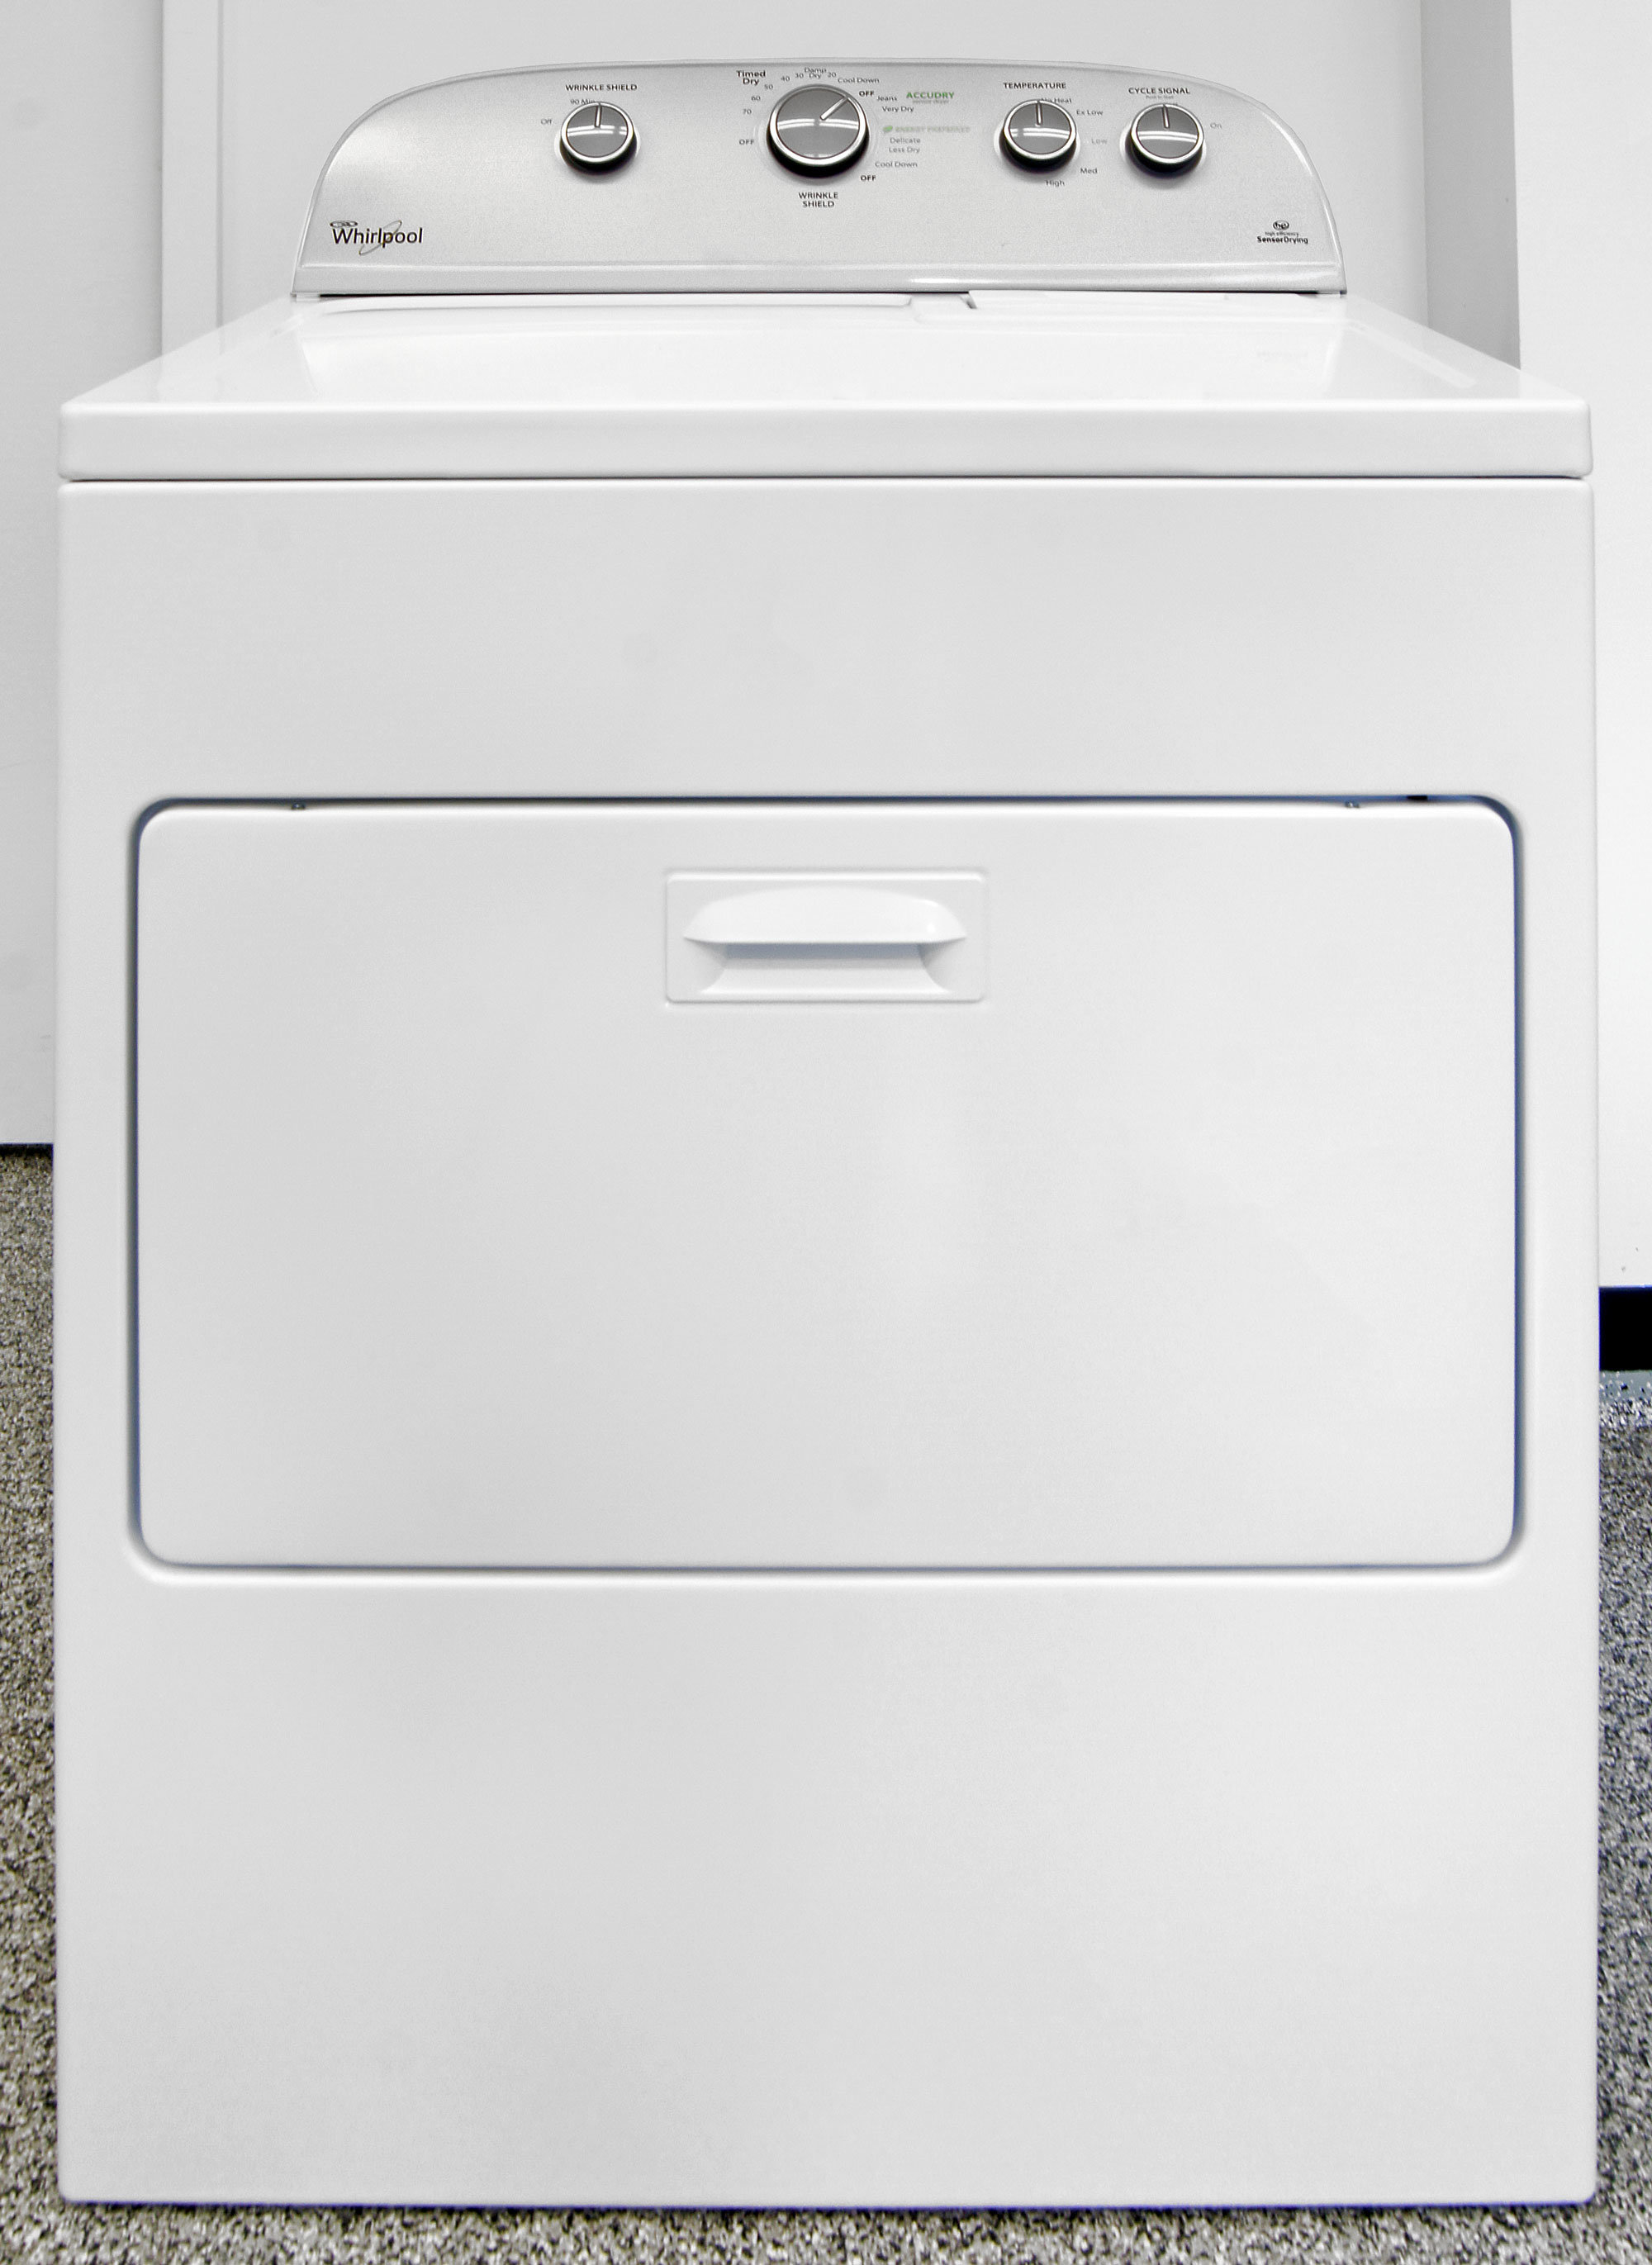 Whirlpool WED5000DW Dryer Review - Reviewed.com Laundry